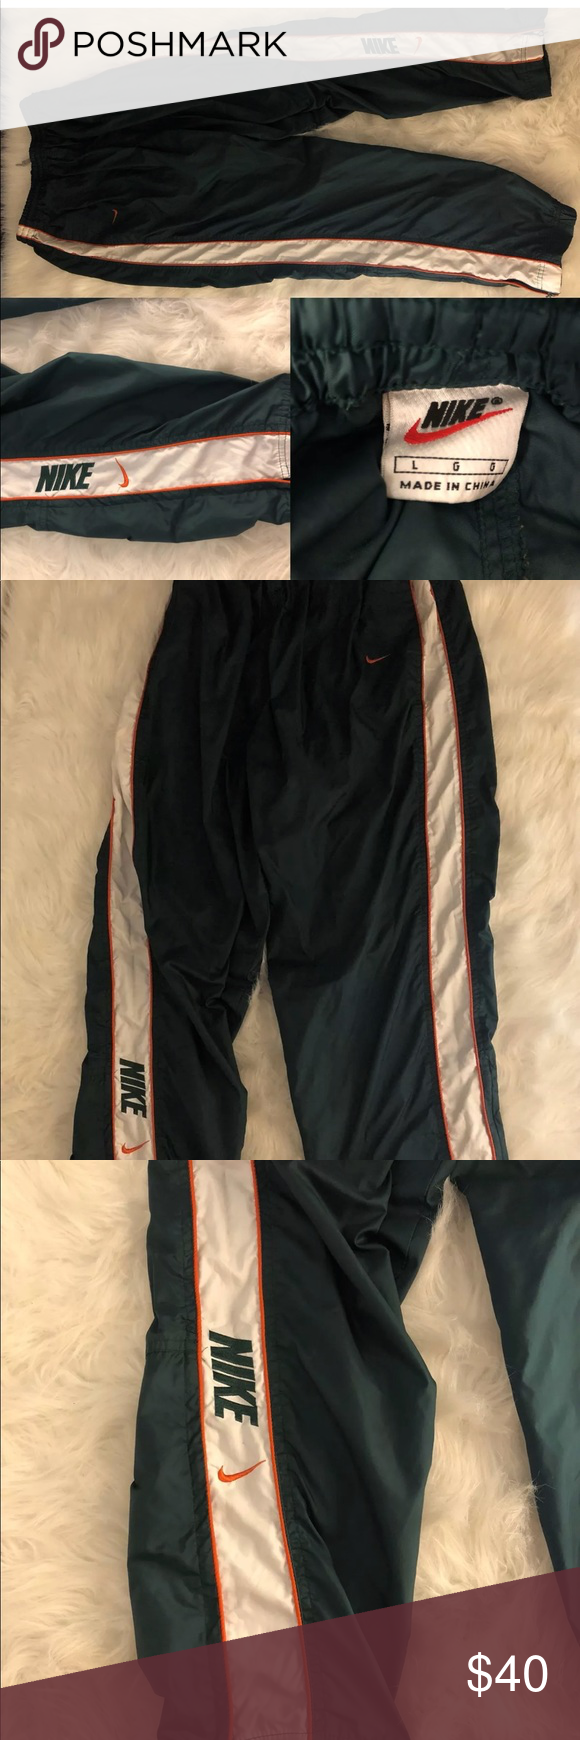 692d167d9 Vintage Nike Pants Windbreakers Sweatpants Large Vintage Nike Track Pants  Windbreakers Sweatpants Lined Swoosh Retro 90's